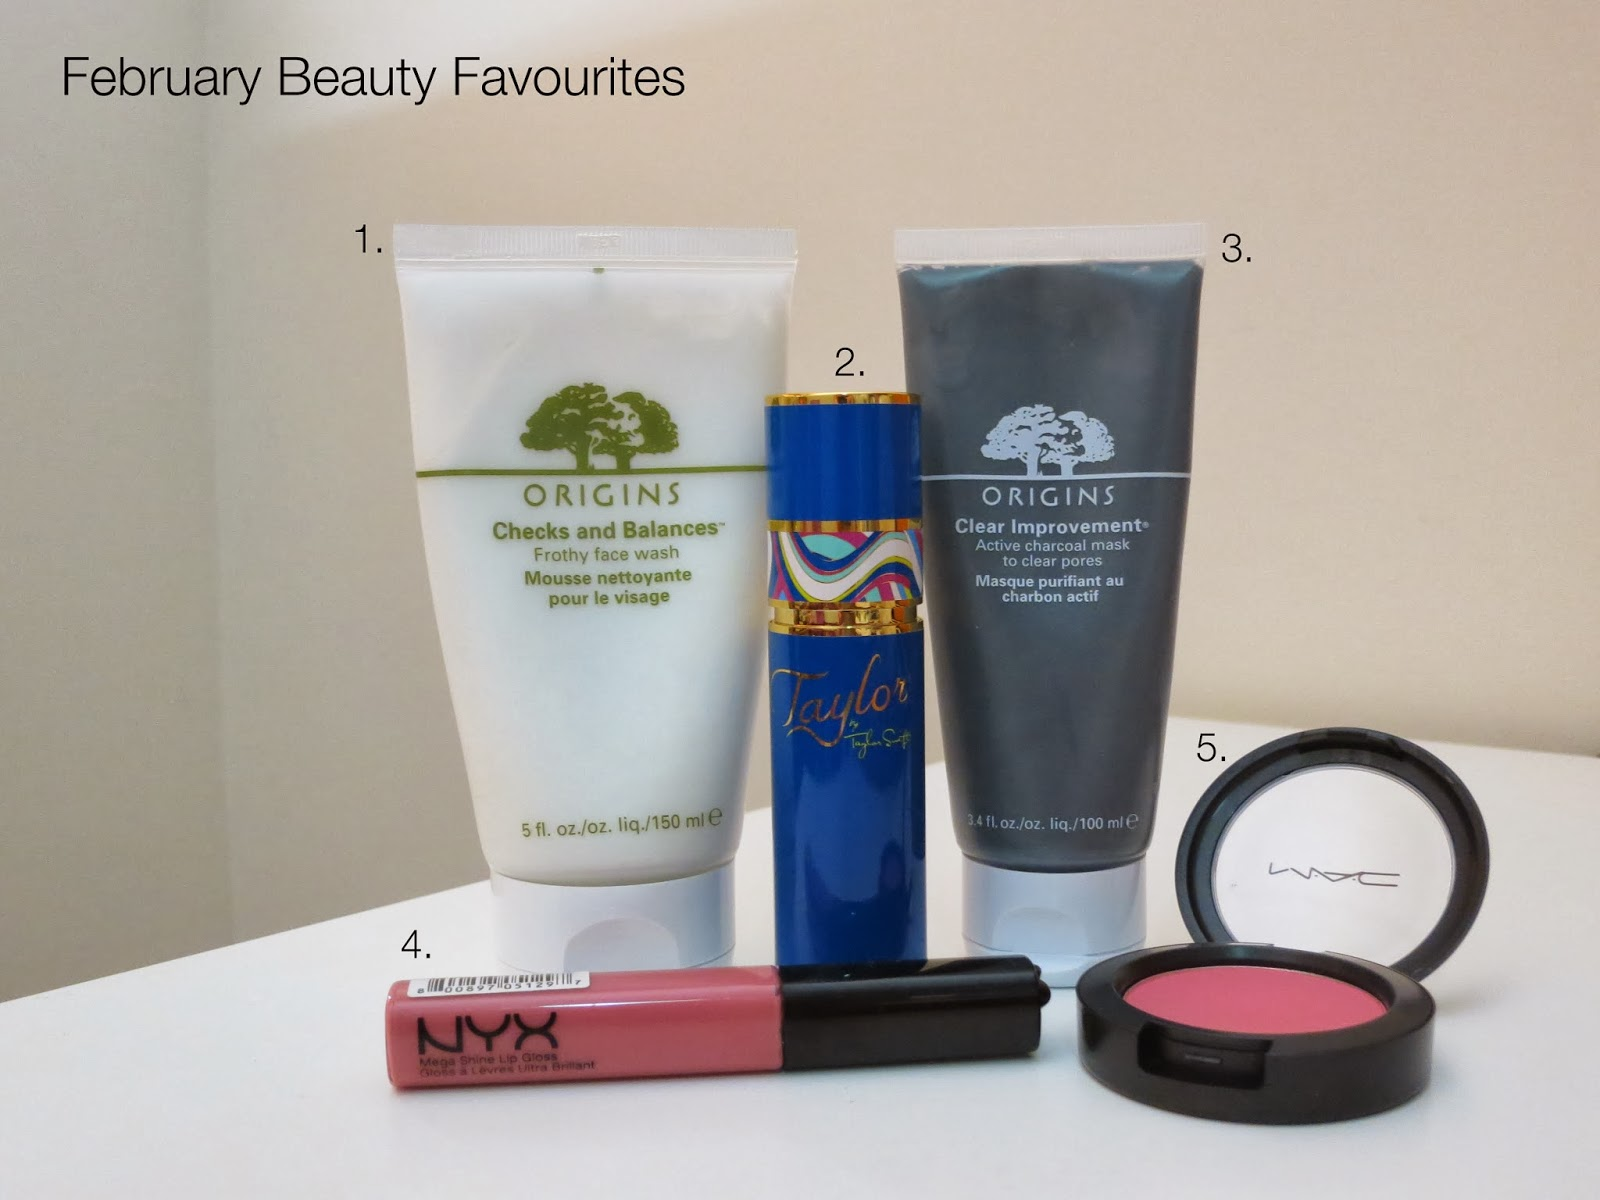 monthly beauty favourites, makeup favourites, skincare favourites, perfume favourites, february monthly favourites, february monthly favorites, origins skincare, mac pinch o' peach blush, nyx beige lipgloss